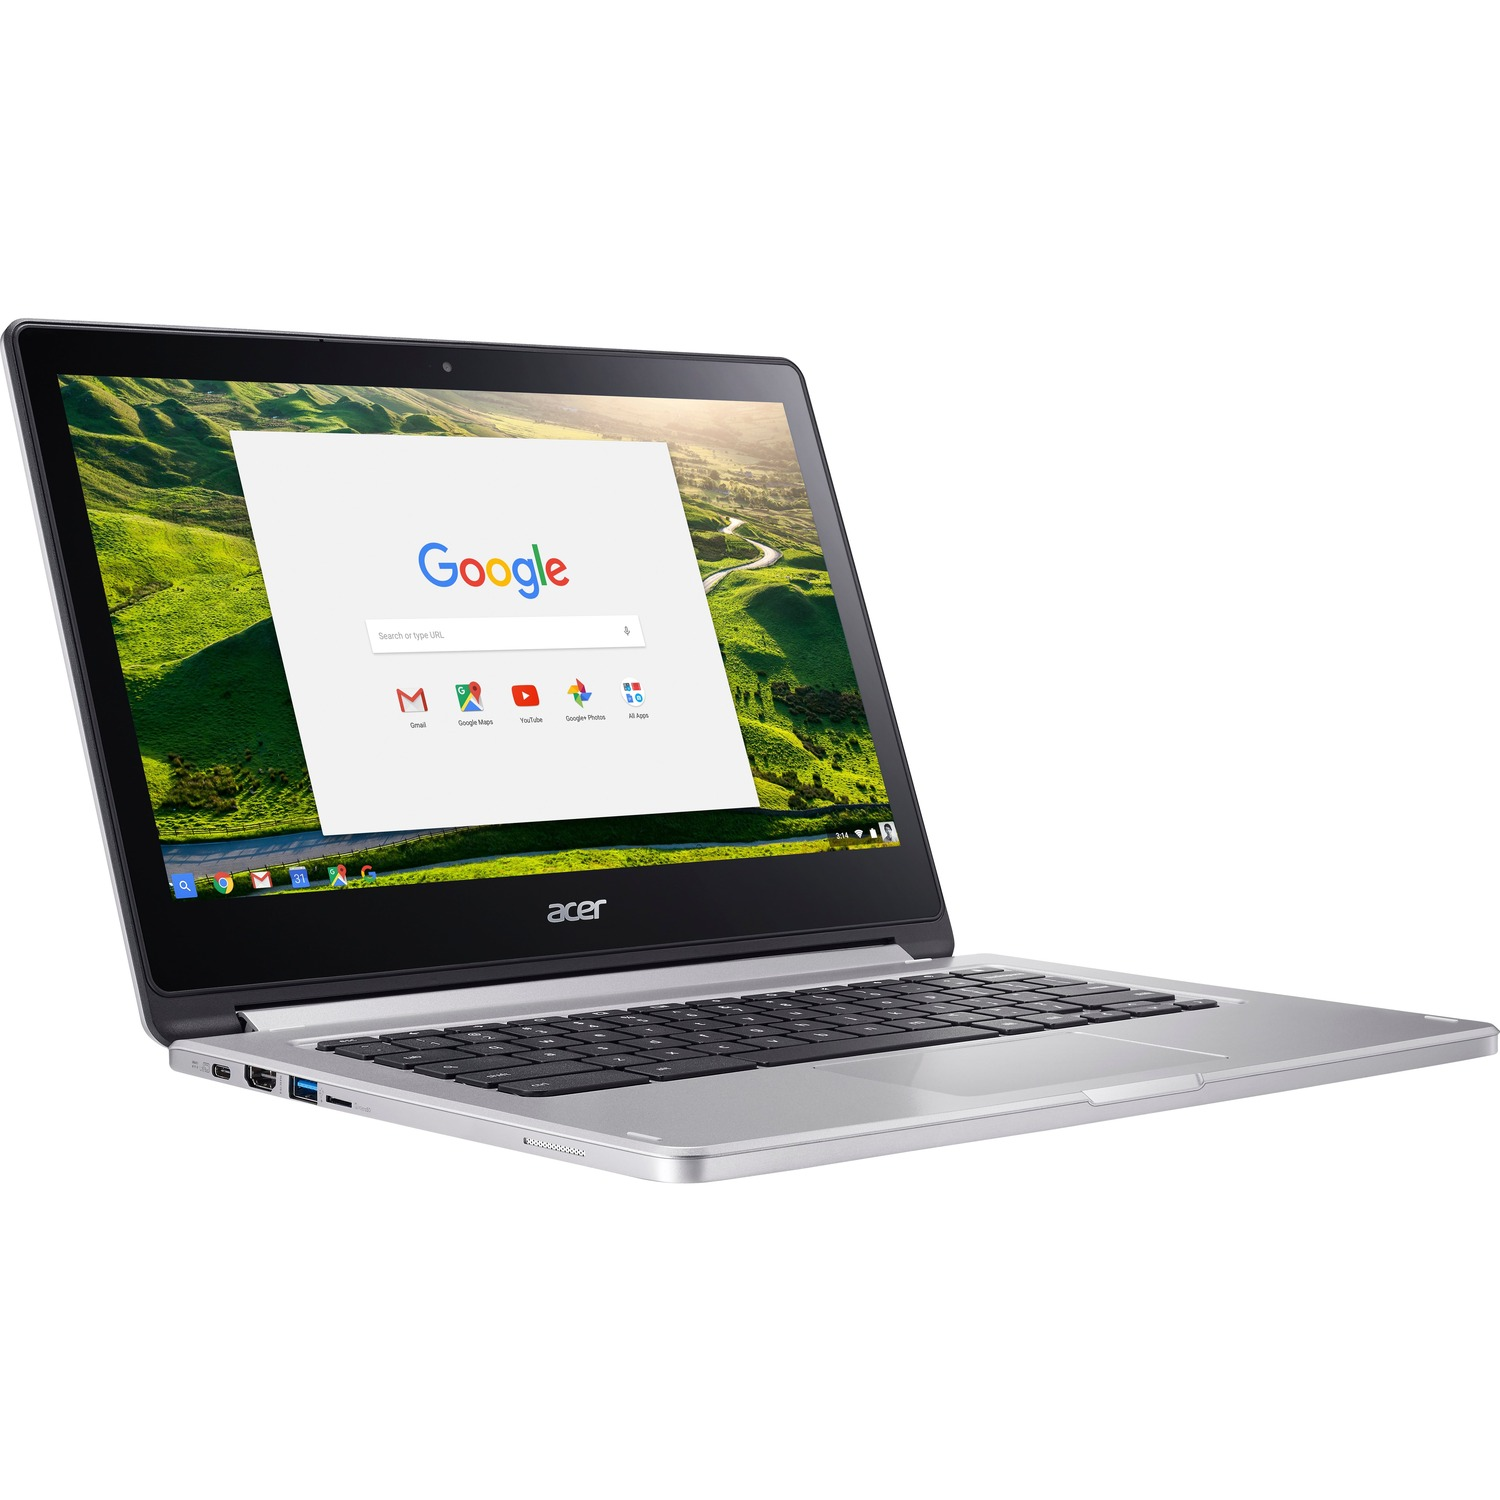 Acer CB5-312T-K1TR 33.8 cm 13.3inch Touchscreen LCD Chromebook - MediaTek M8173C Quad-core 4 Core 2.10 GHz - 4 GB LPDDR3 - 64 GB Flash Memory - Chrome OS - 1920 x 1